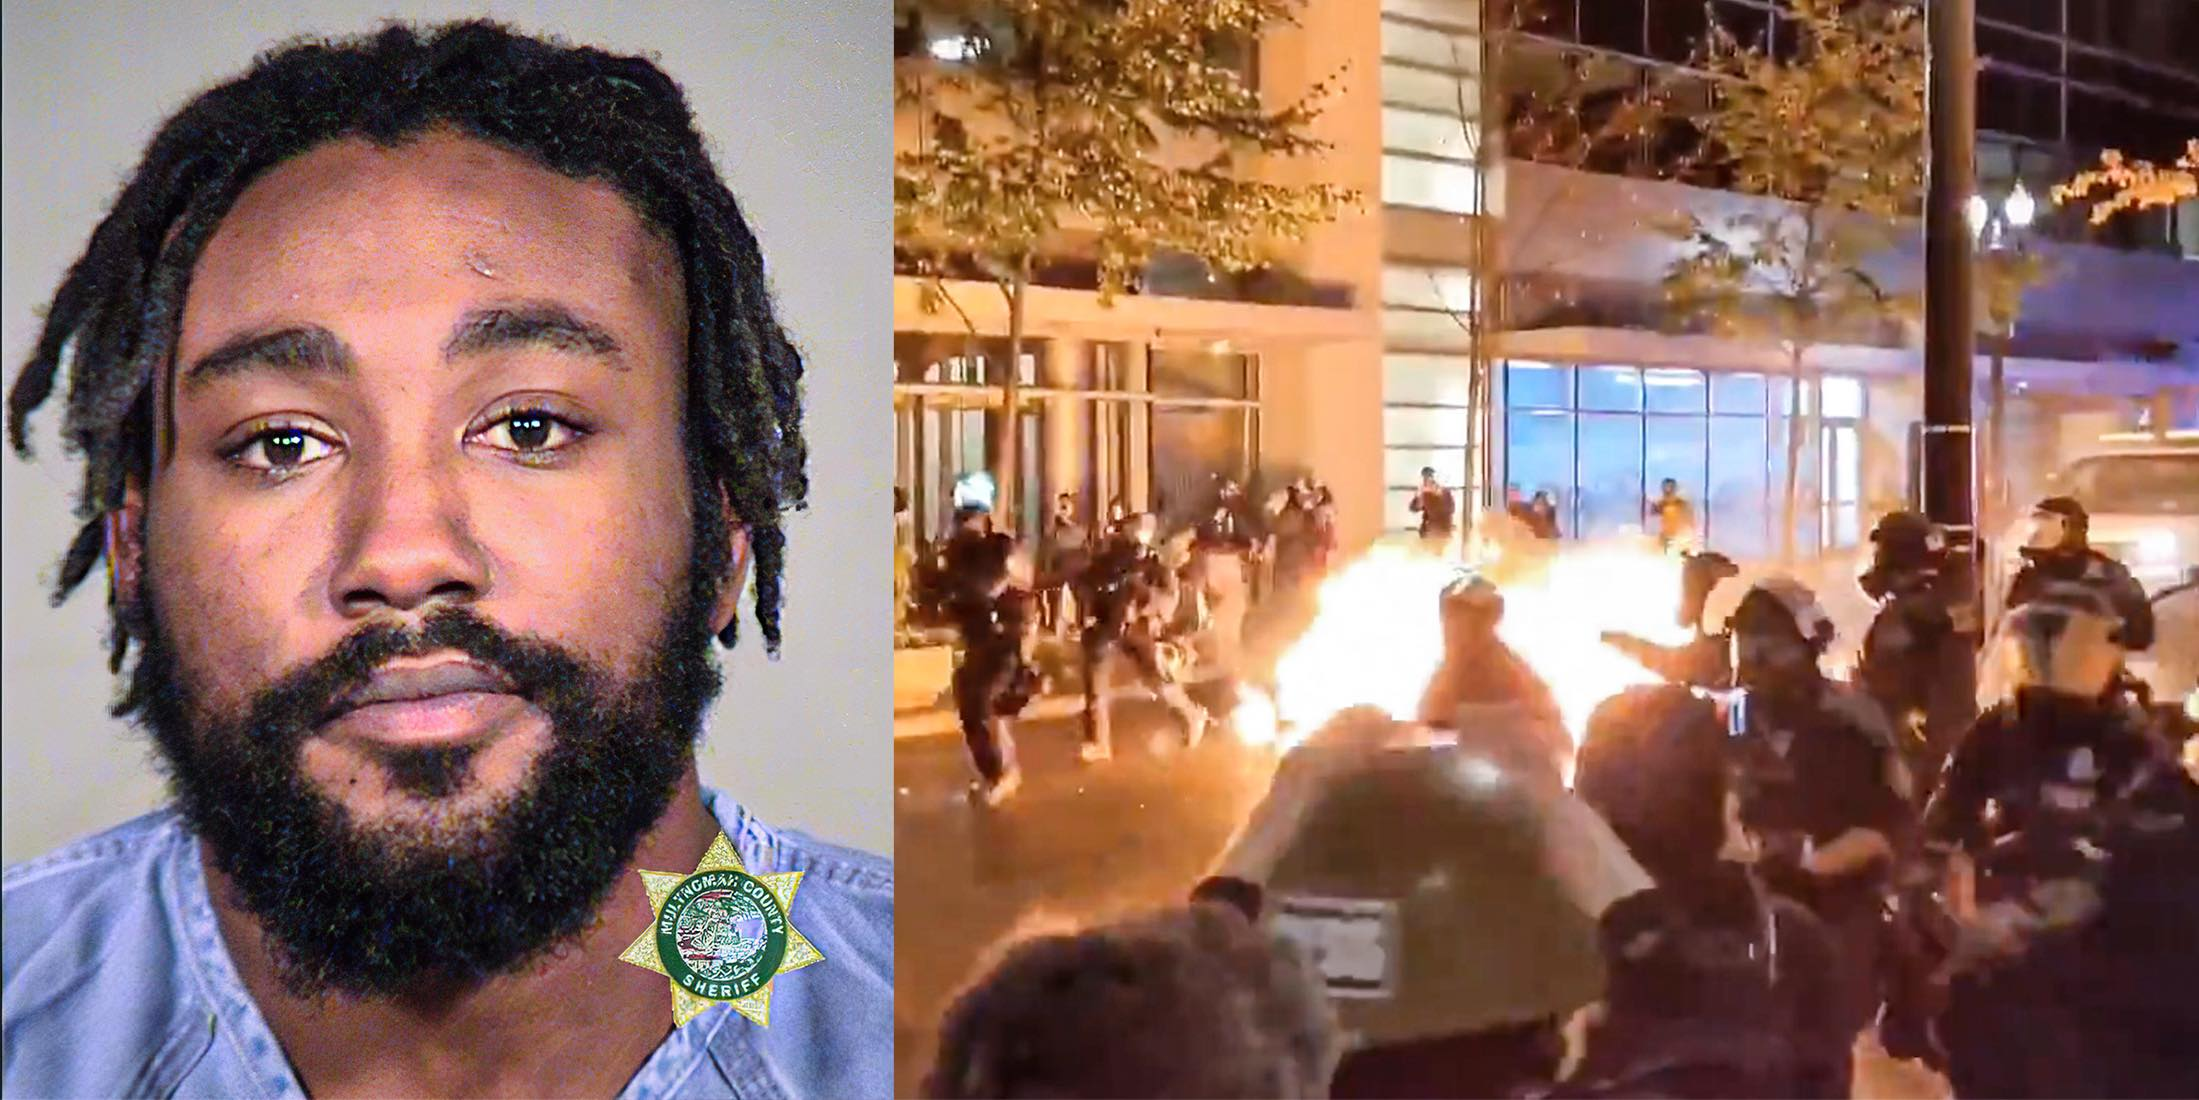 Who is the BLM leader charged with attempted murder of police in Portland?